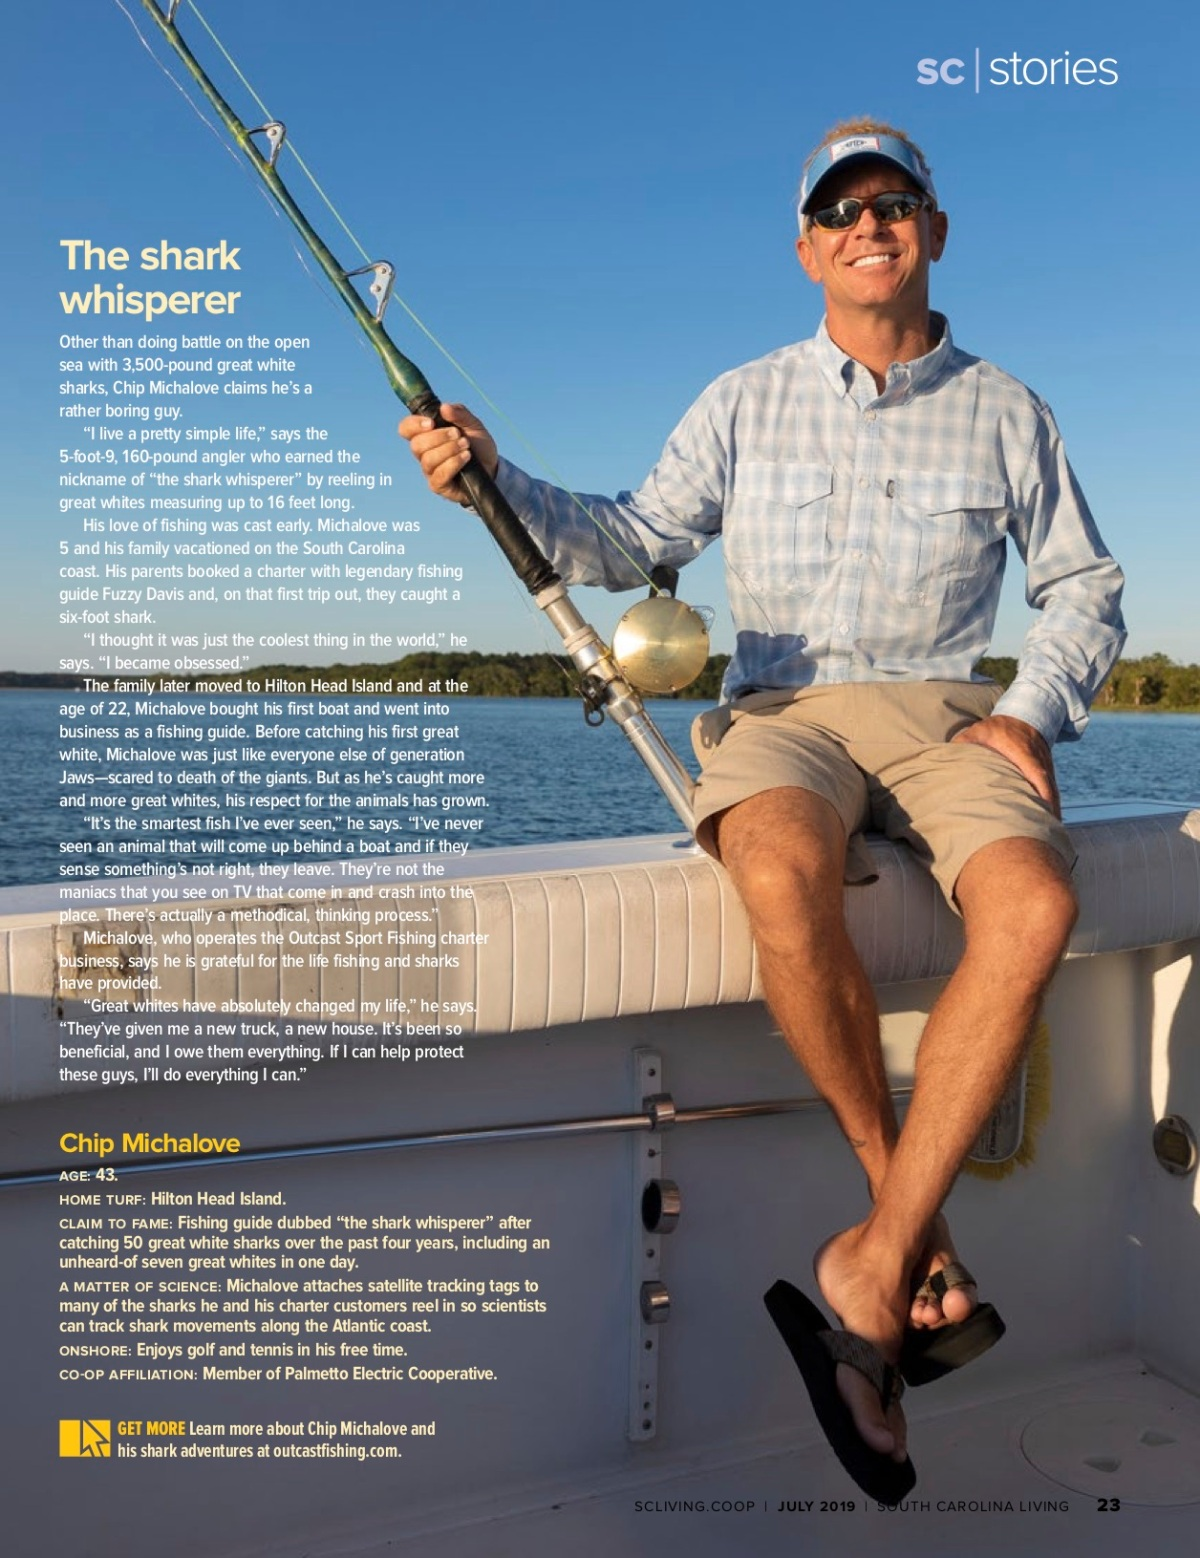 Getting to know South Carolina's sharkwhisperer